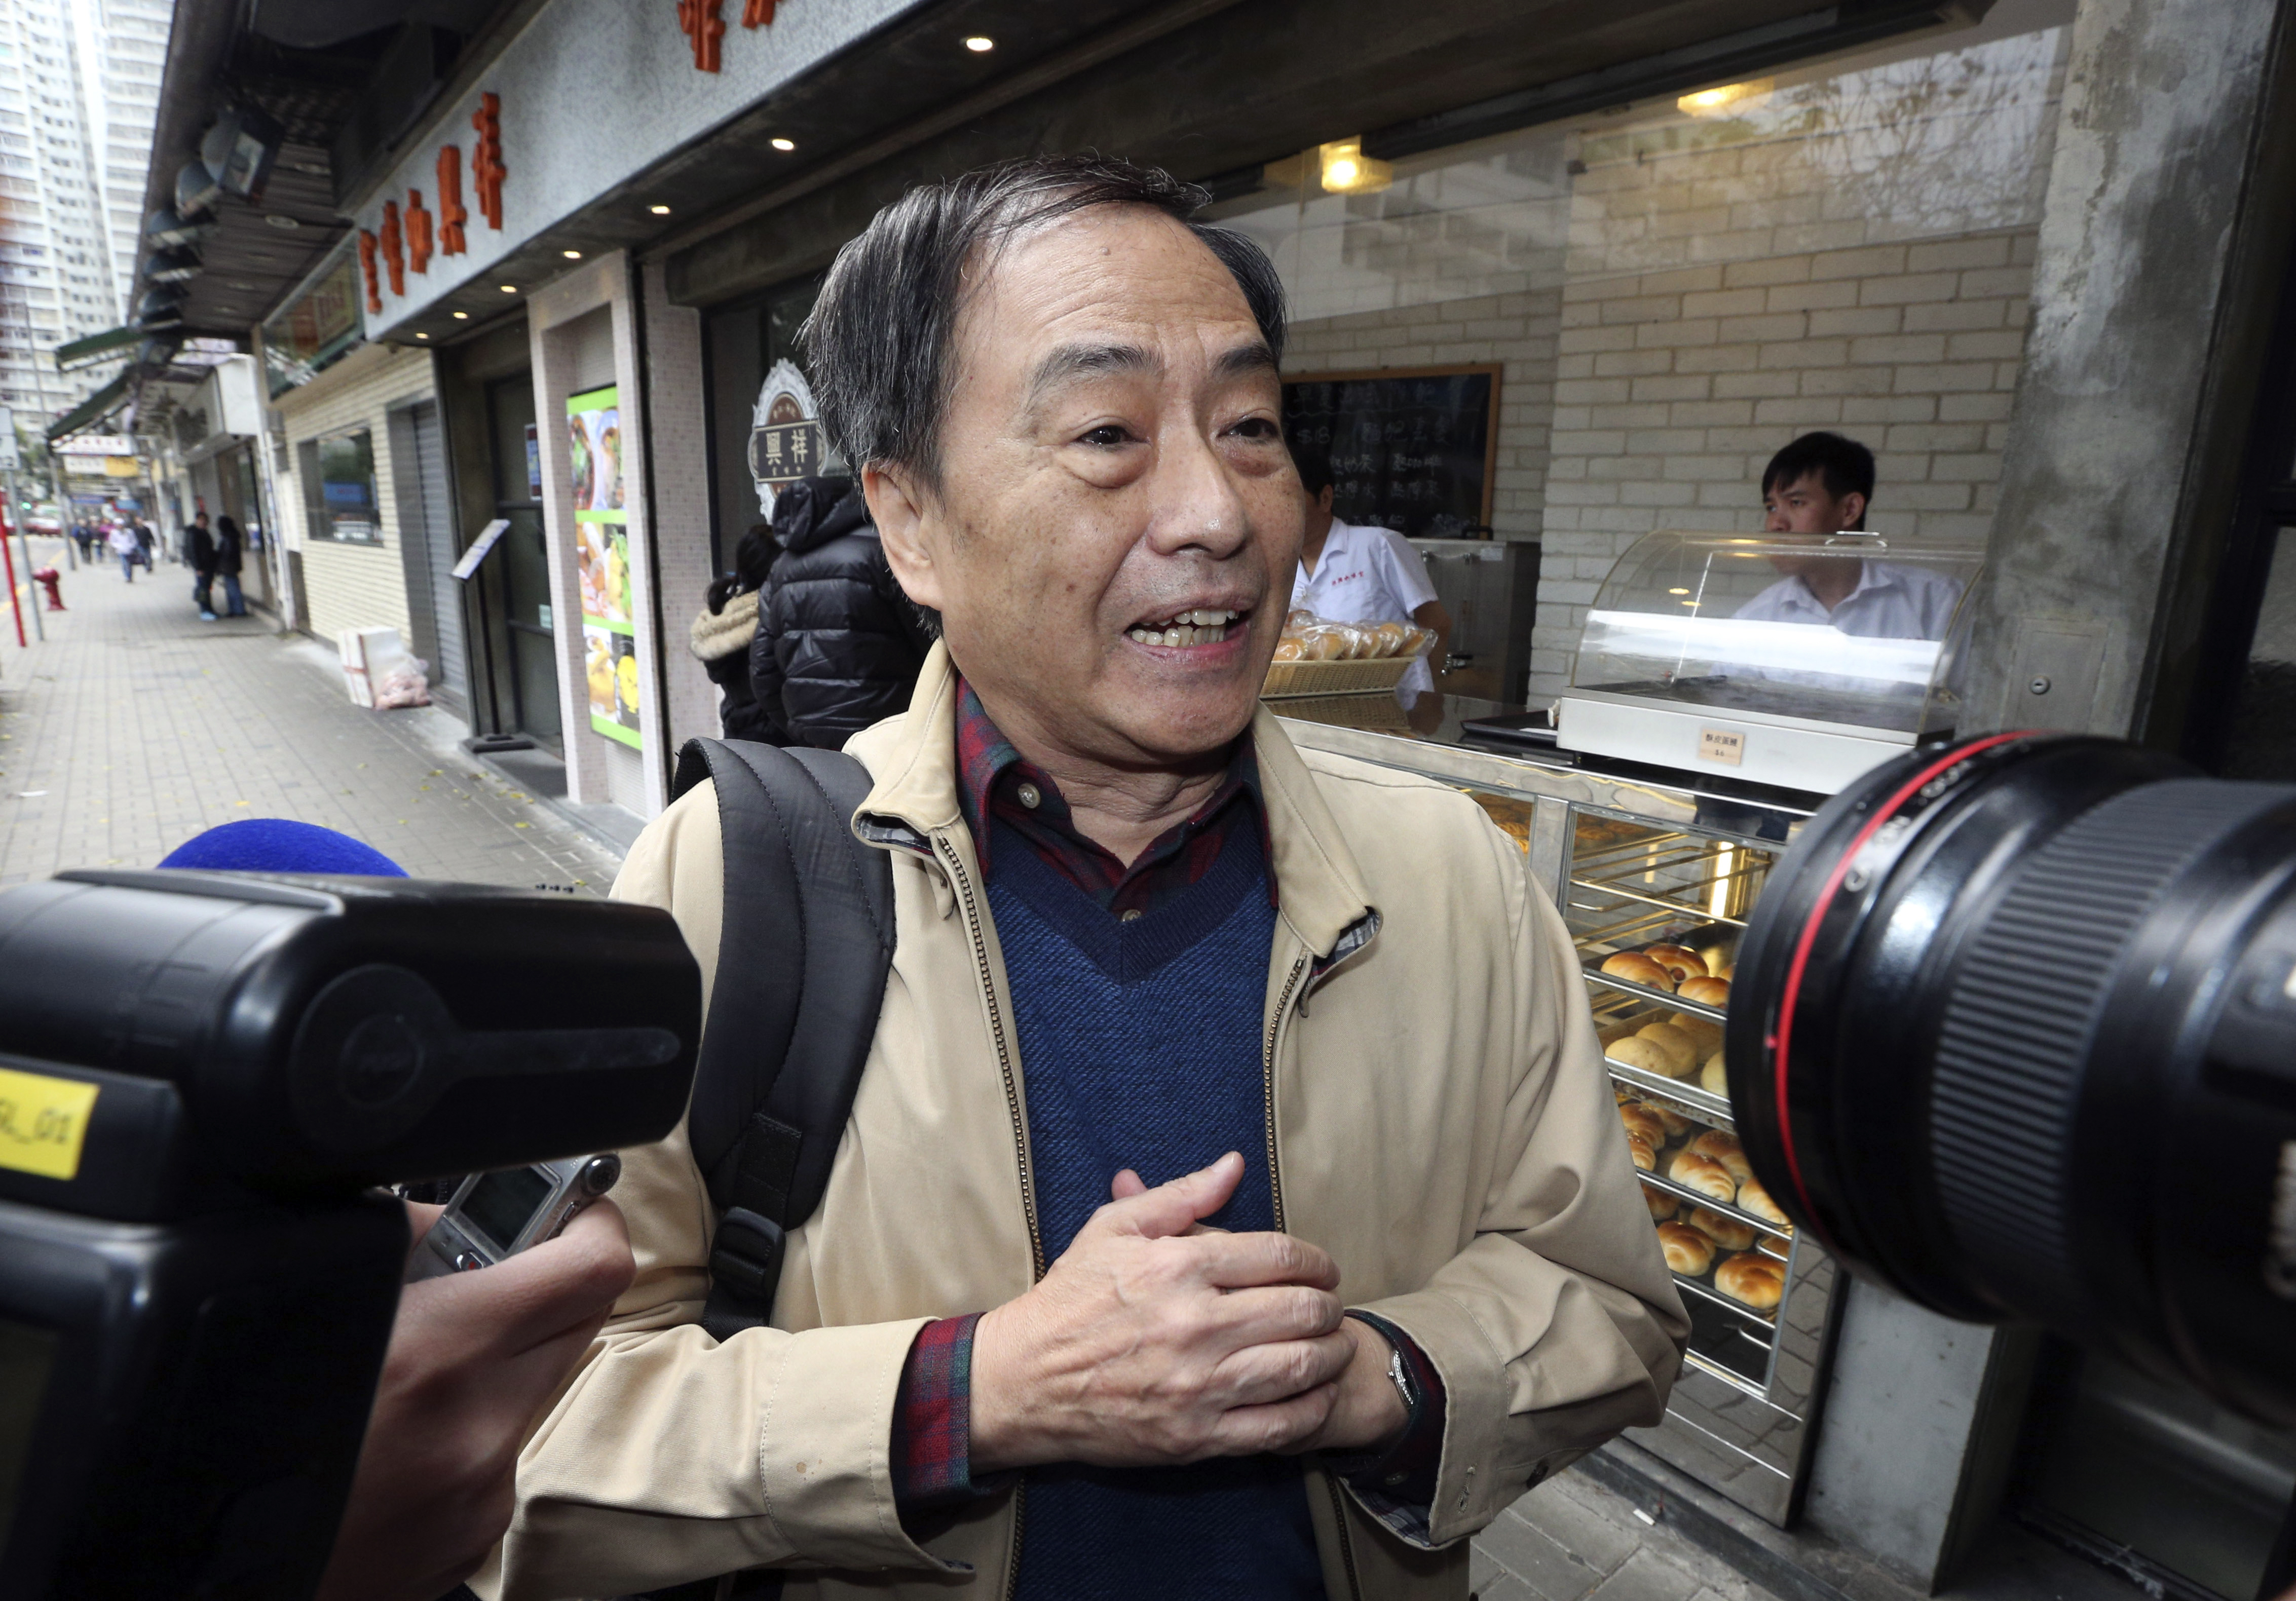 Bookseller Lee Bo speaks to media near his home in Hong Kong on March 25, 2016. His disappearance nearly three months ago rattled civil-liberties advocates in Hong Kong